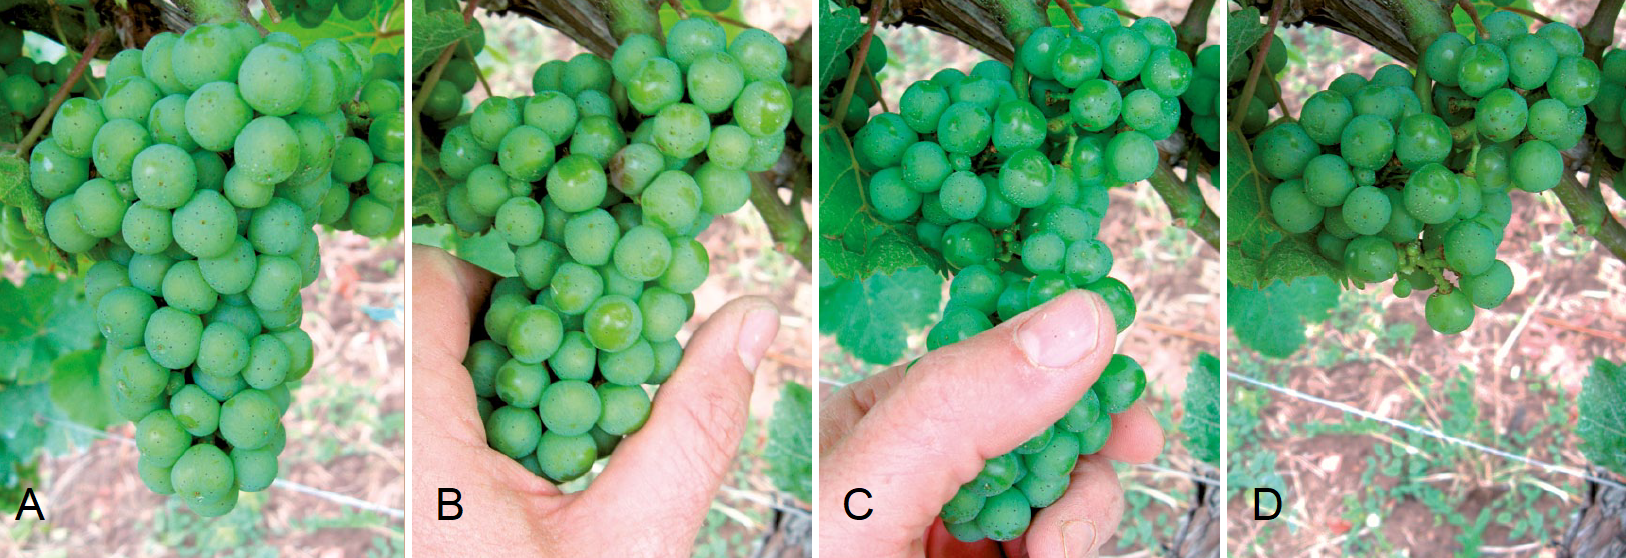 Grape break - steps A, B, C and D